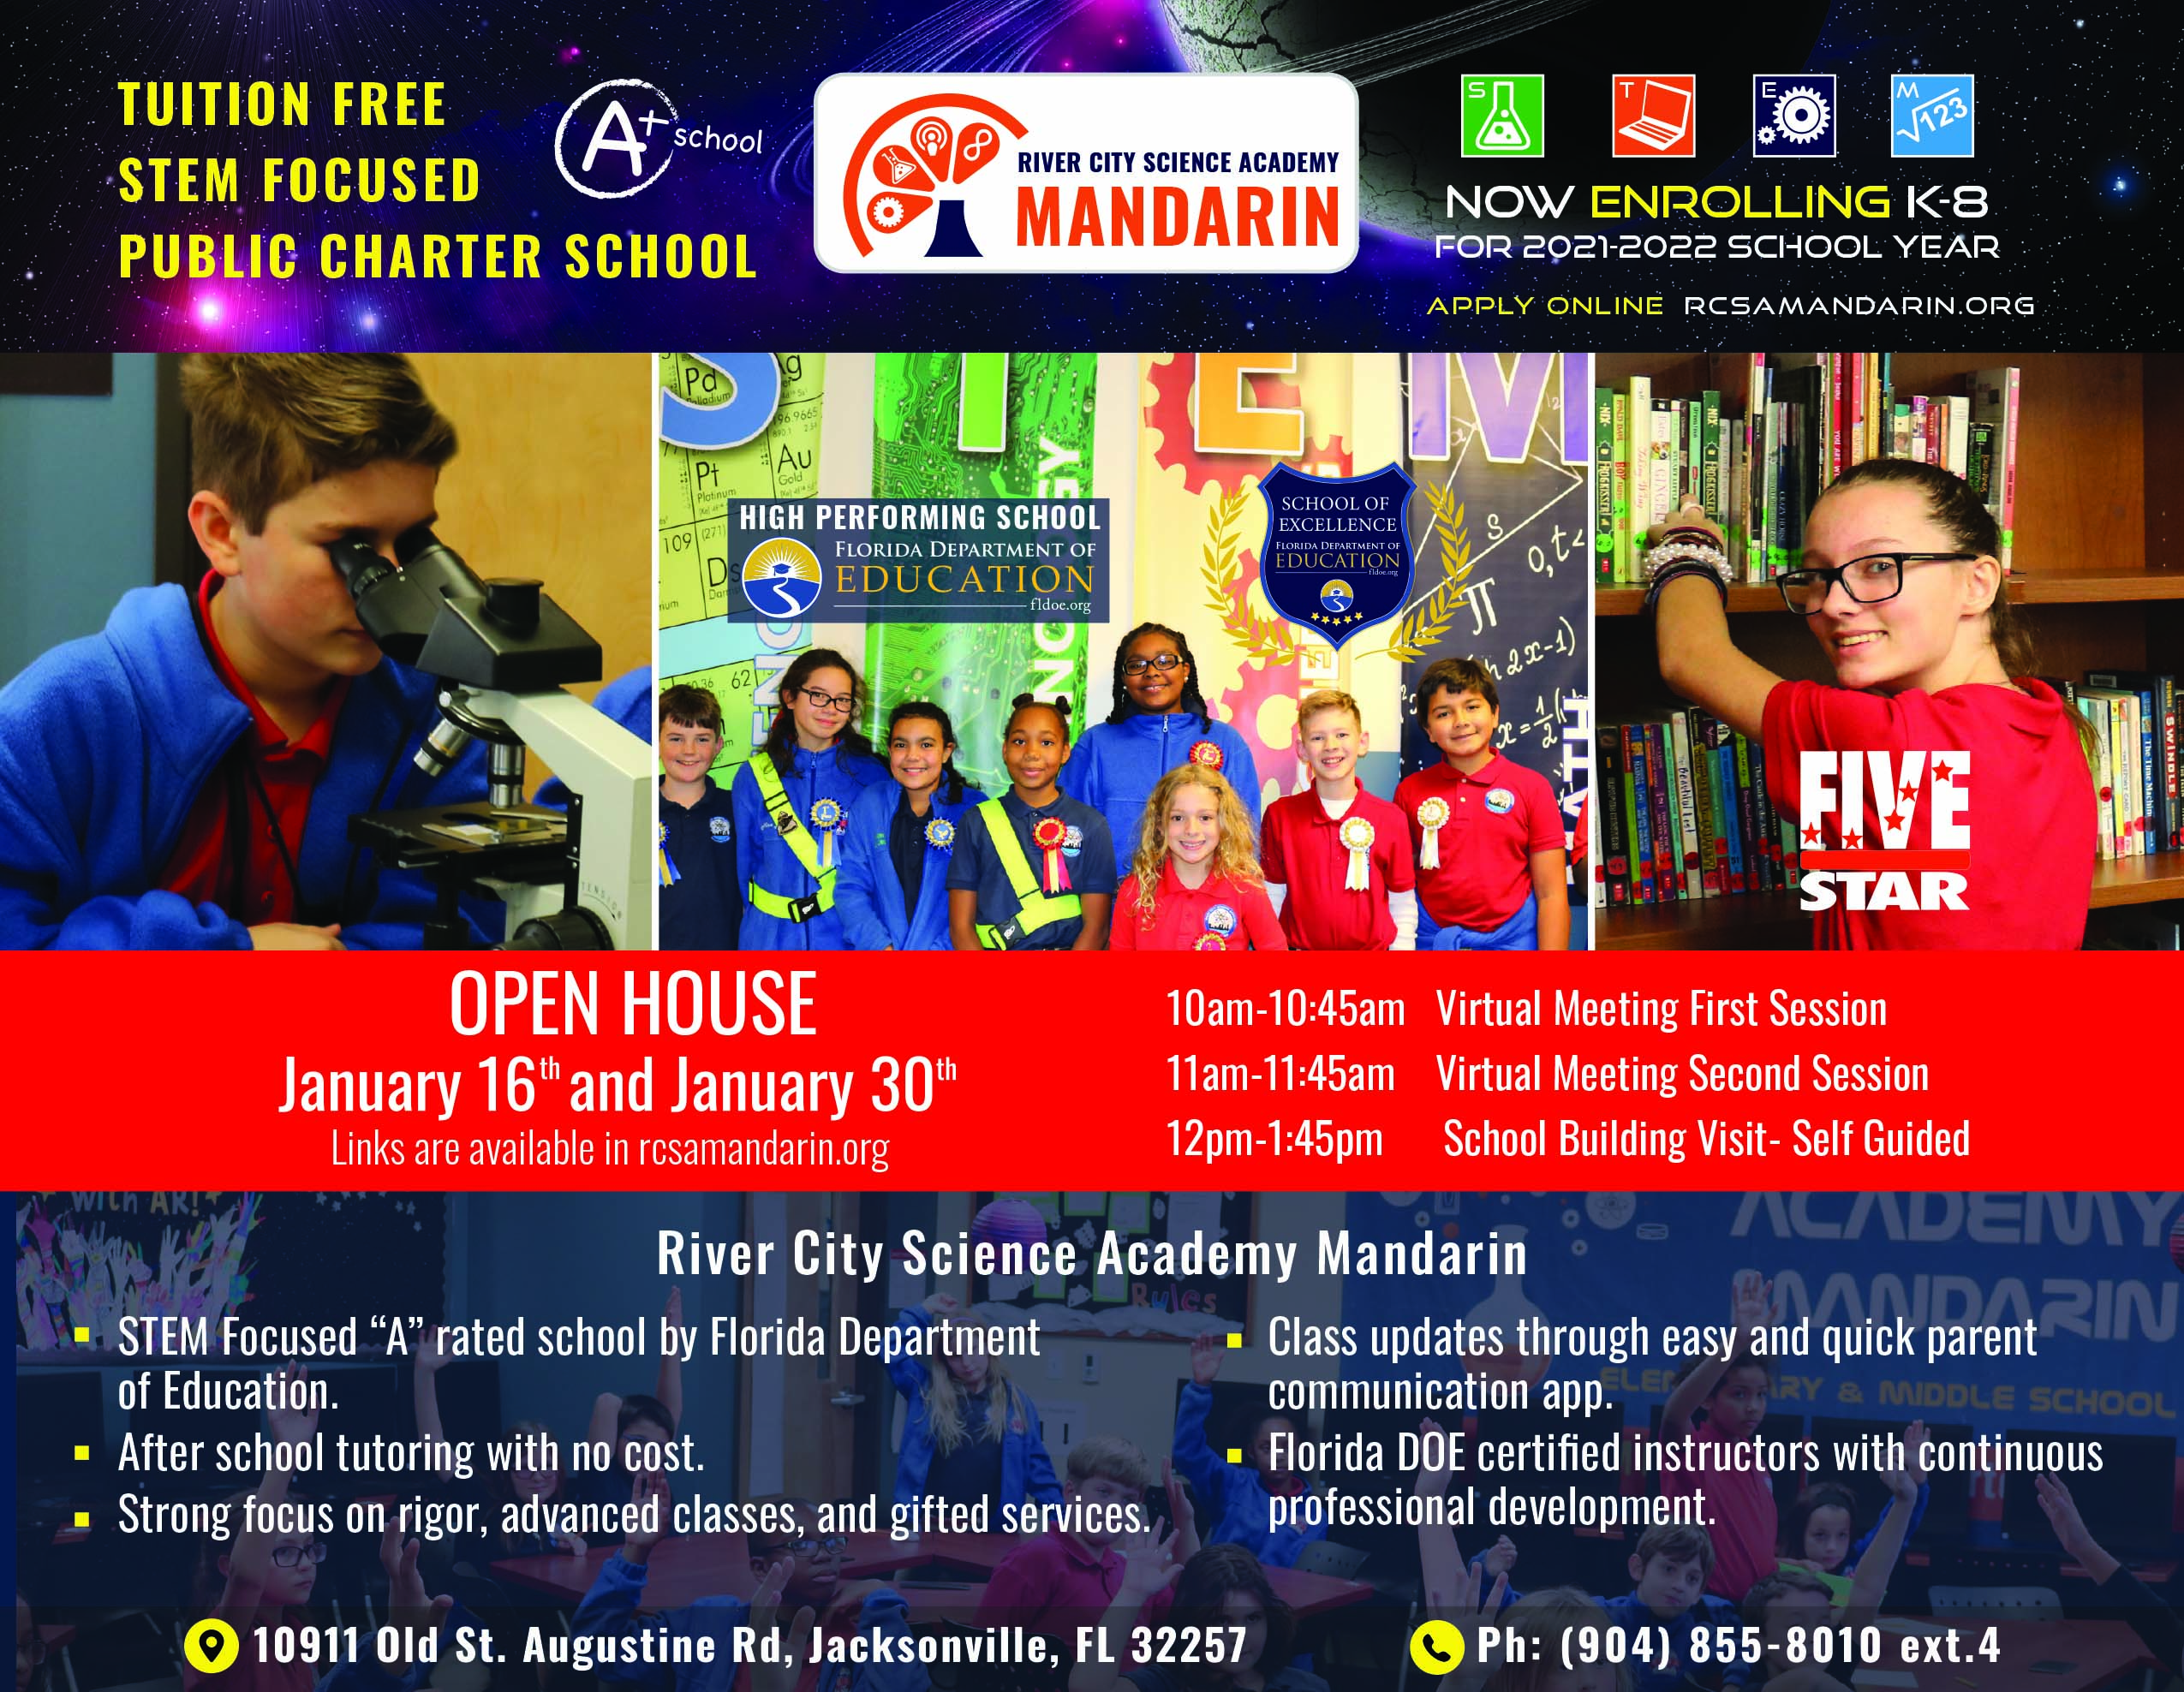 River City Science Academy Mandarin! Tuition free, stem focused, public charter shcool